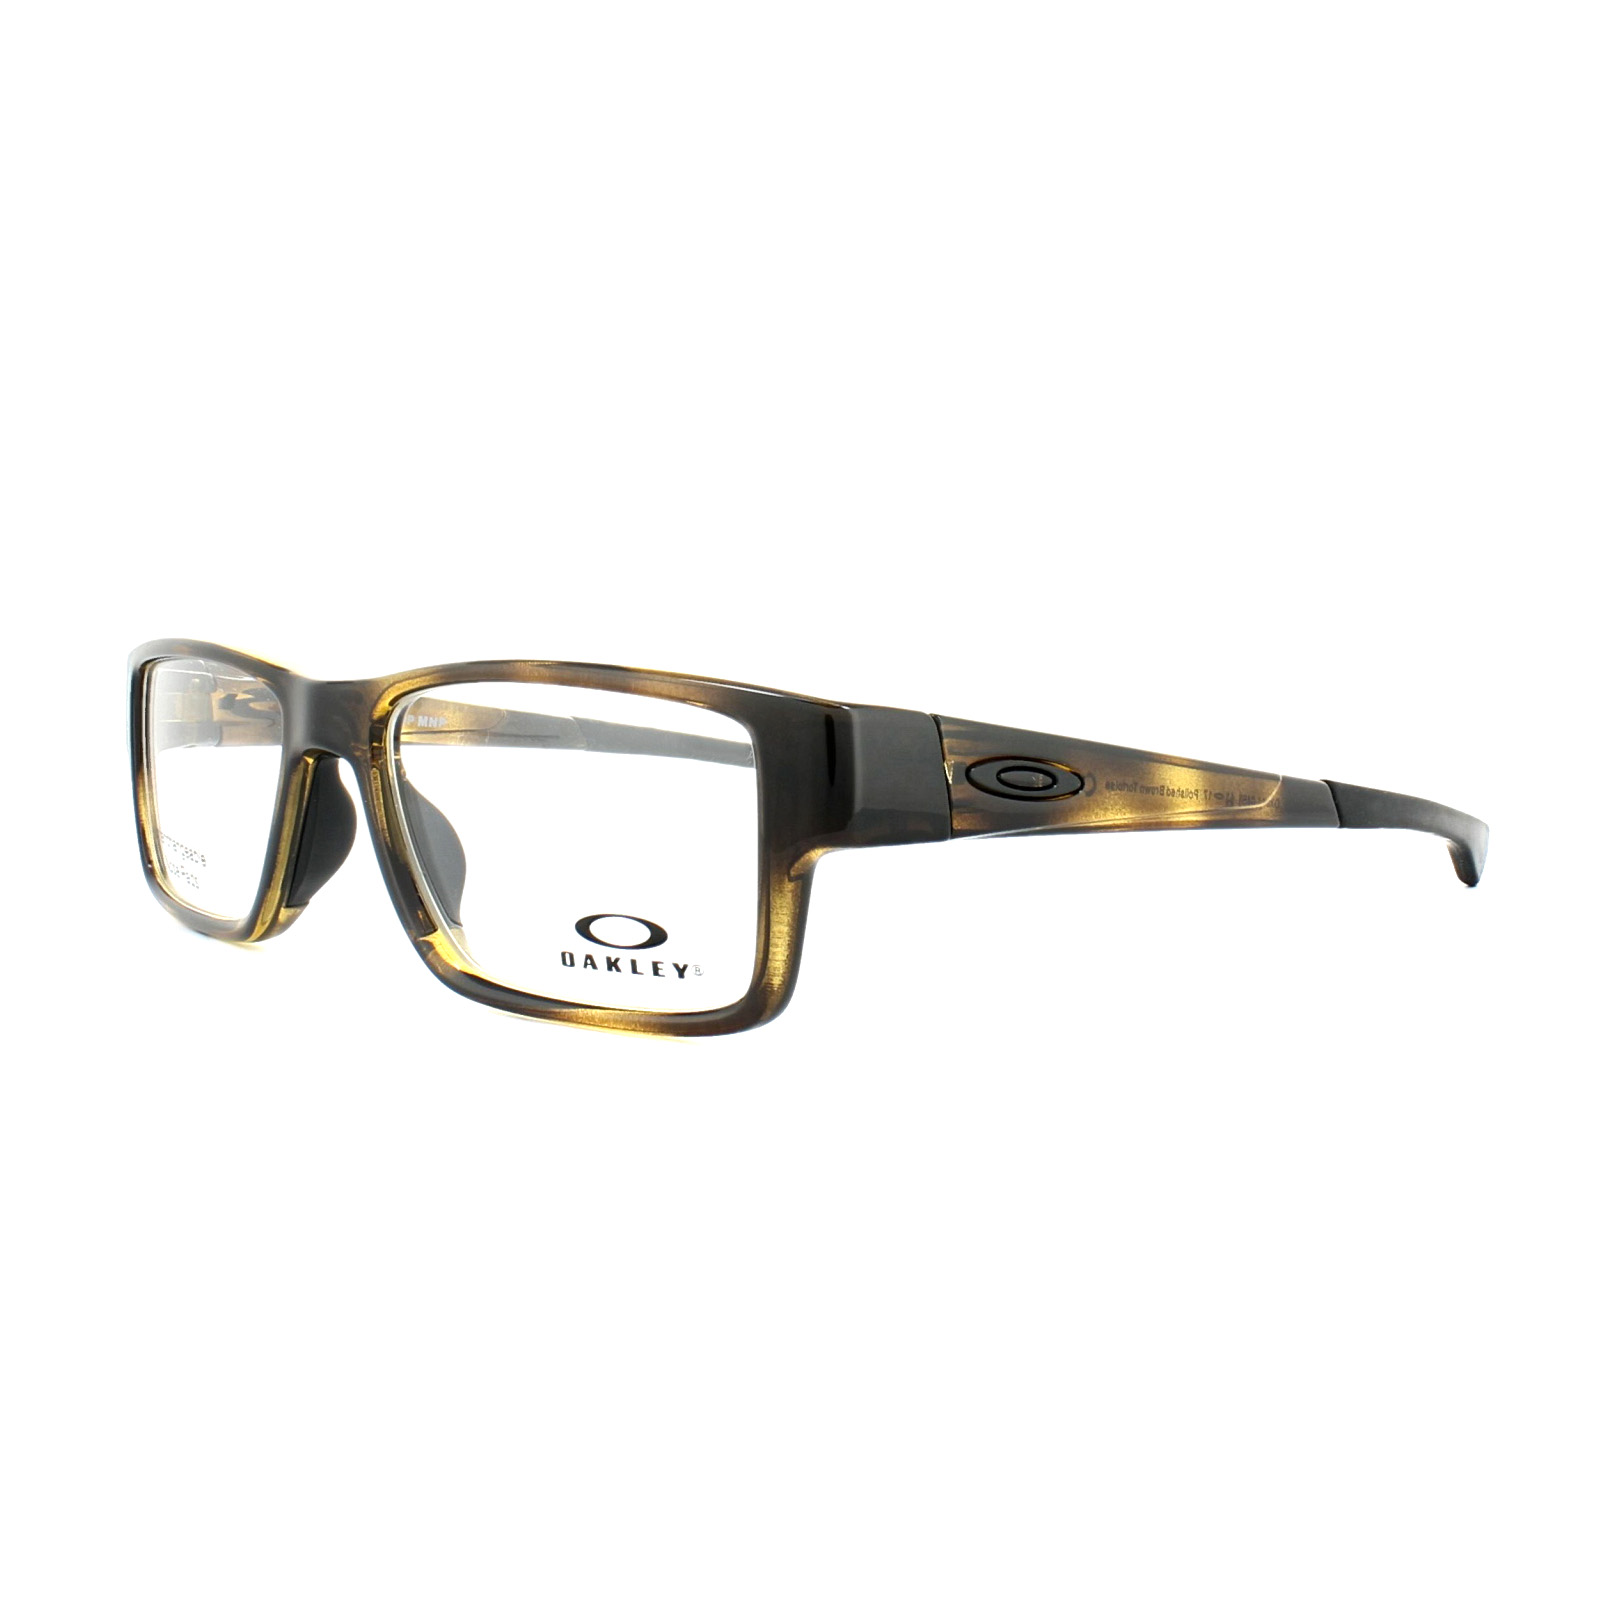 2a4215176aebb Sentinel Oakley Glasses Frames Airdrop Trubridge OX8121-04 Polished Brown  Tortoise